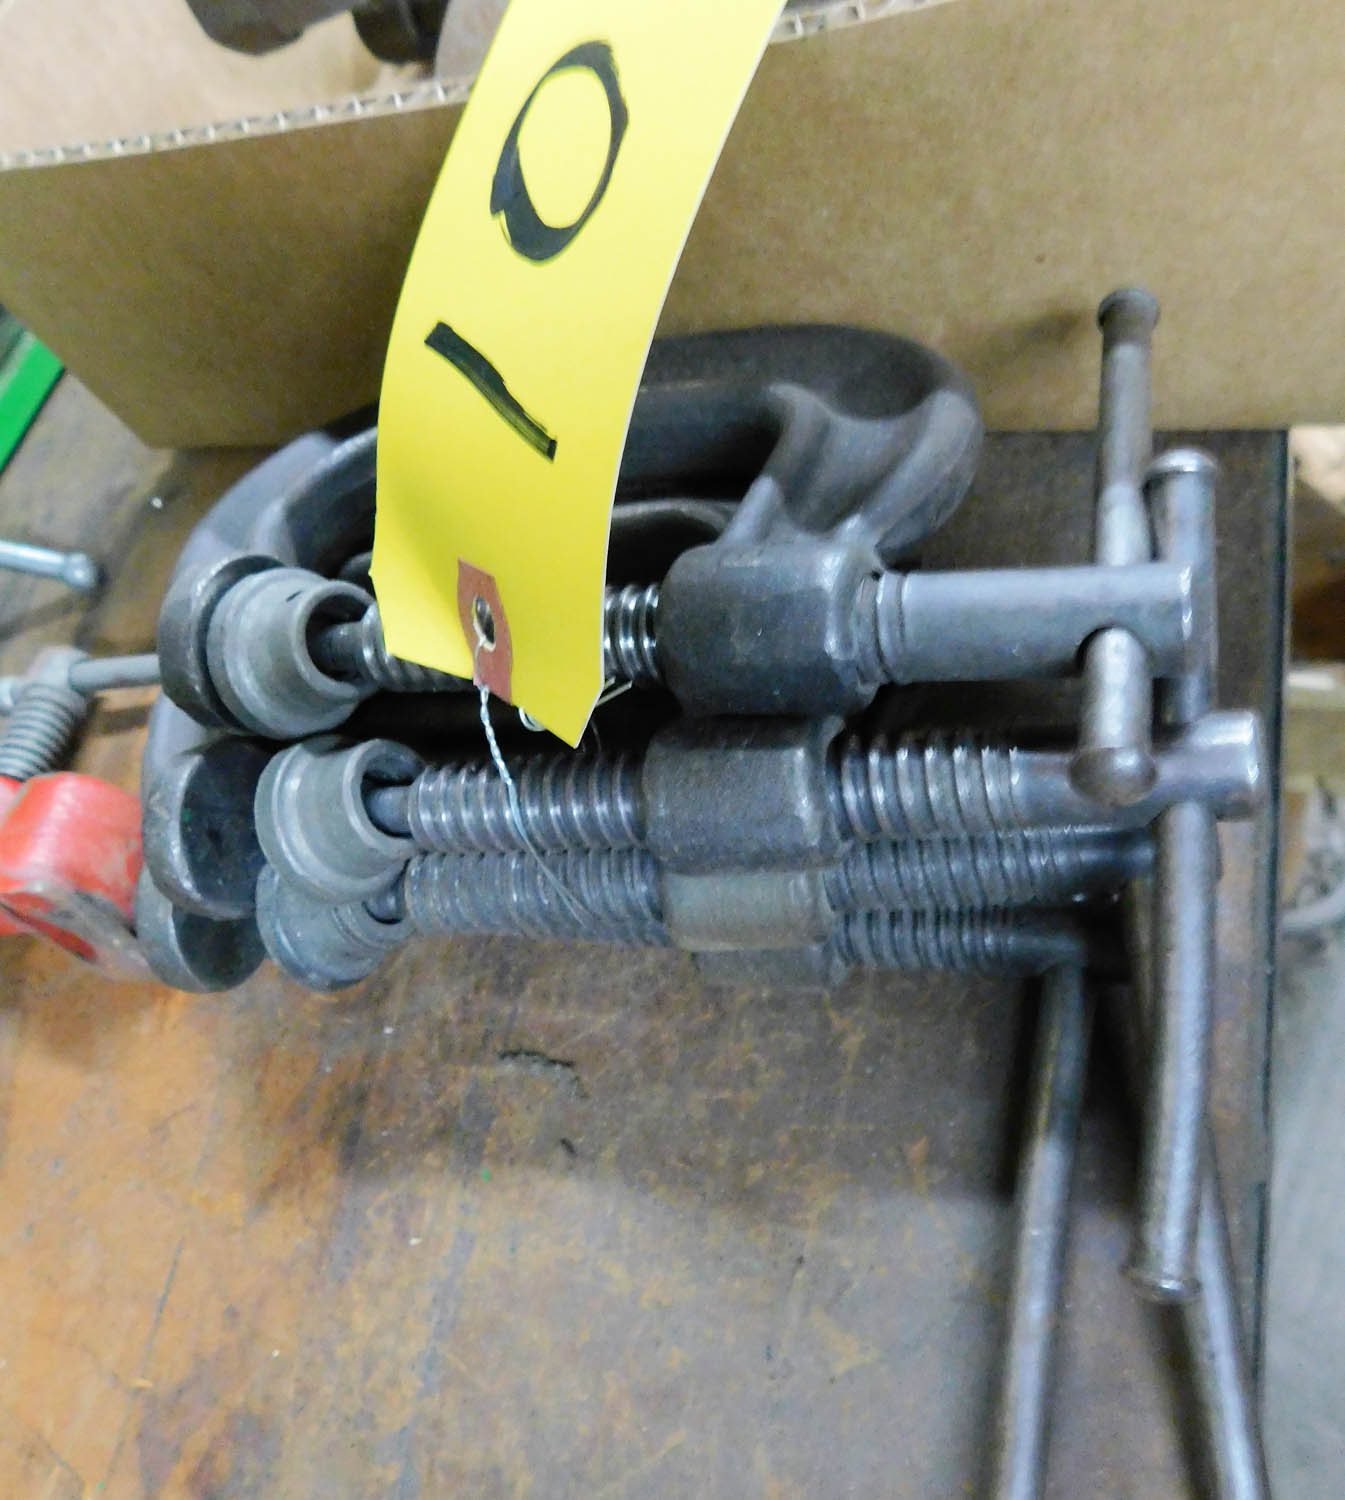 Lot 10 - C-CLAMPS